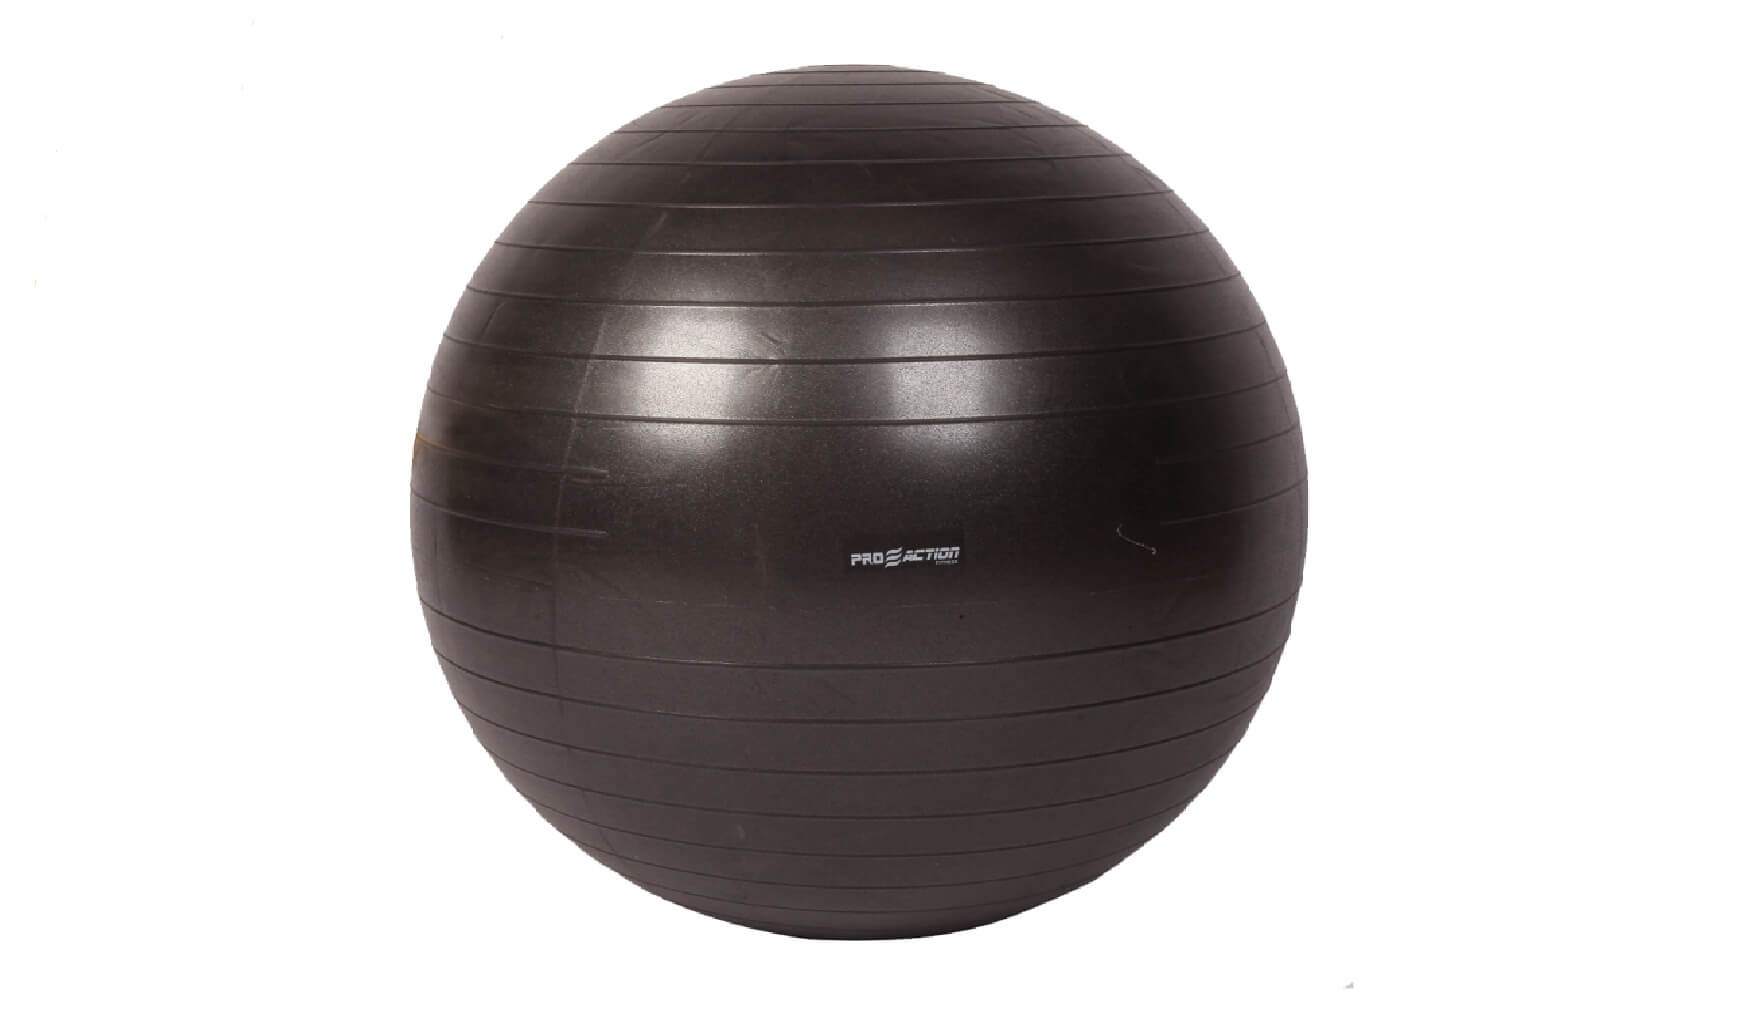 GYM BALL PROACTION – ANTIESTOURO 75CM